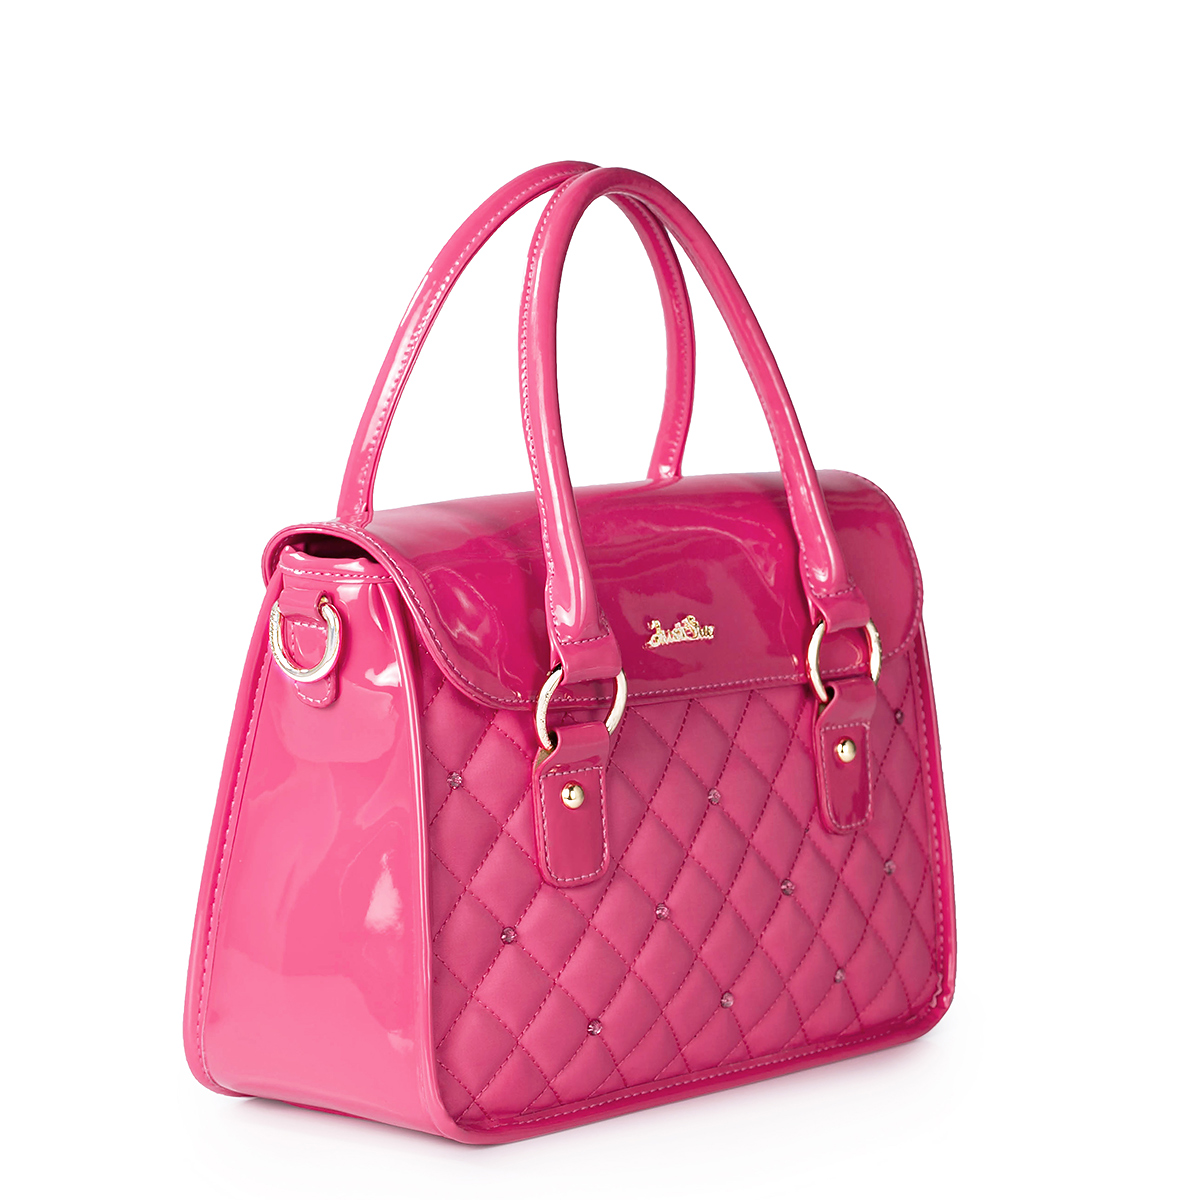 The Children's Place has it all to keep her just as trendy and stylish as mom, check out these girls handbags at prices mom will love too.